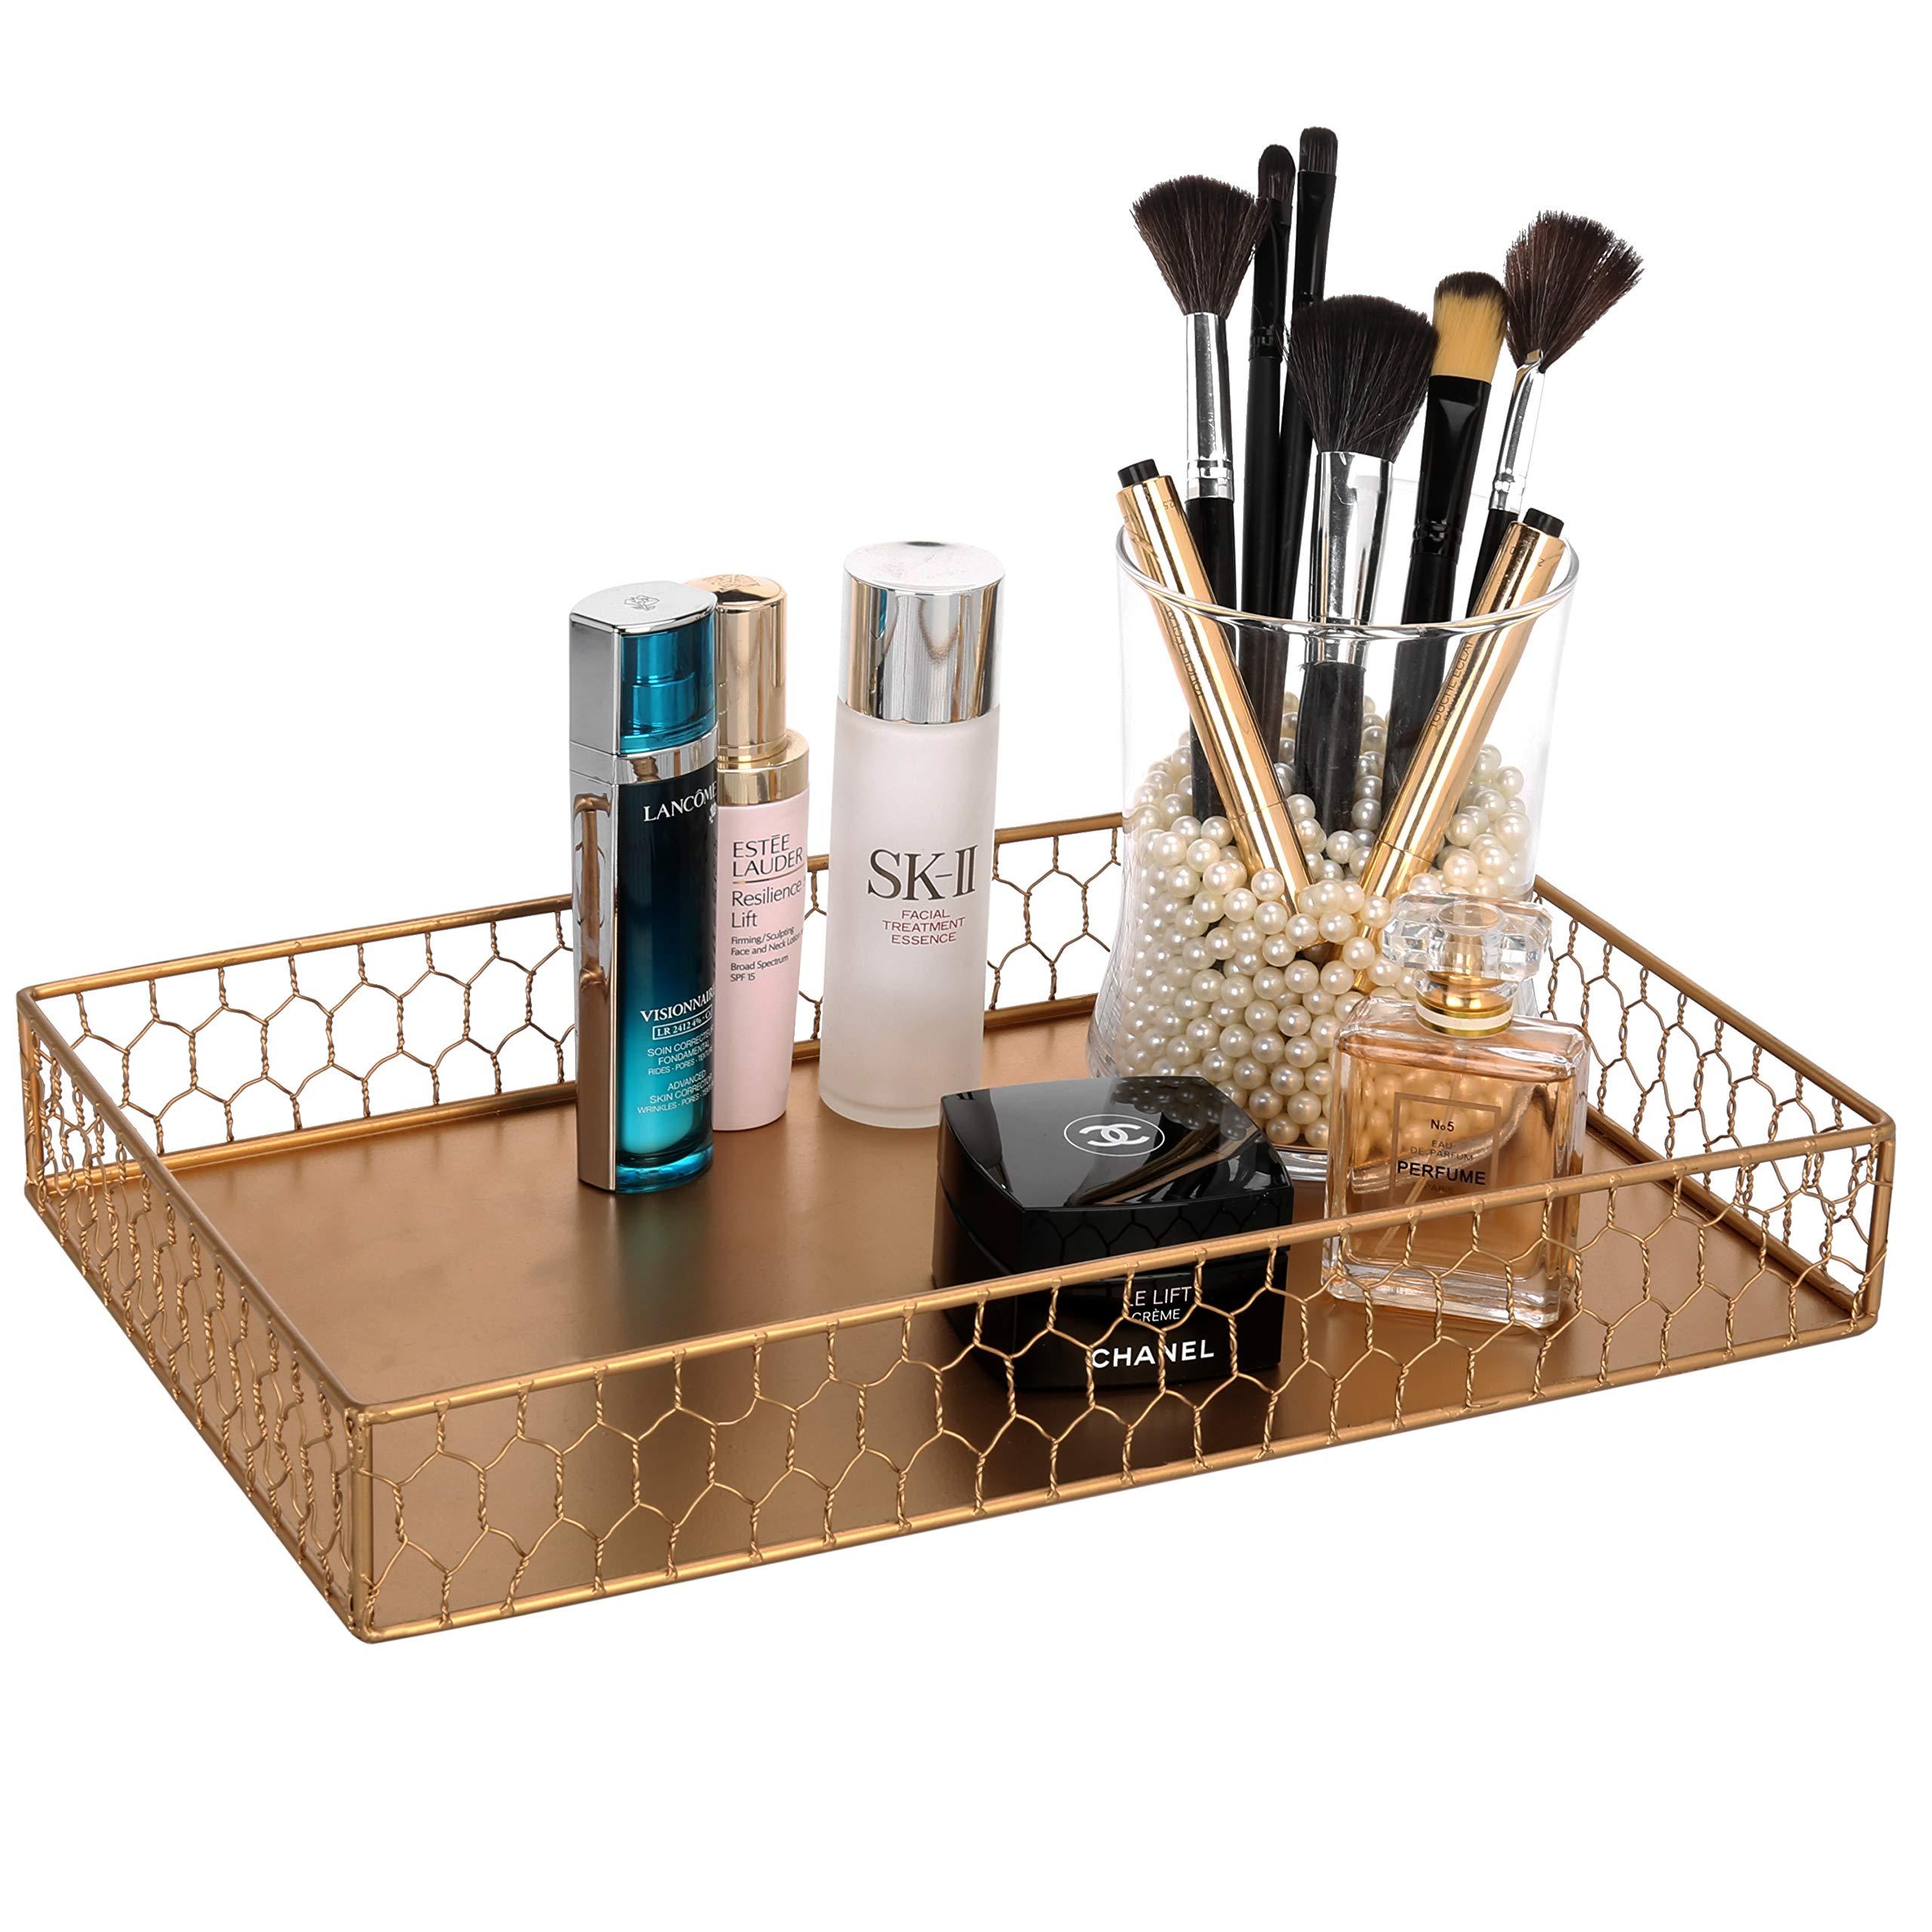 MyGift Vintage Gold-Tone Chicken Wire Bathroom Vanity Tray, 14 x 9 Inch by MyGift